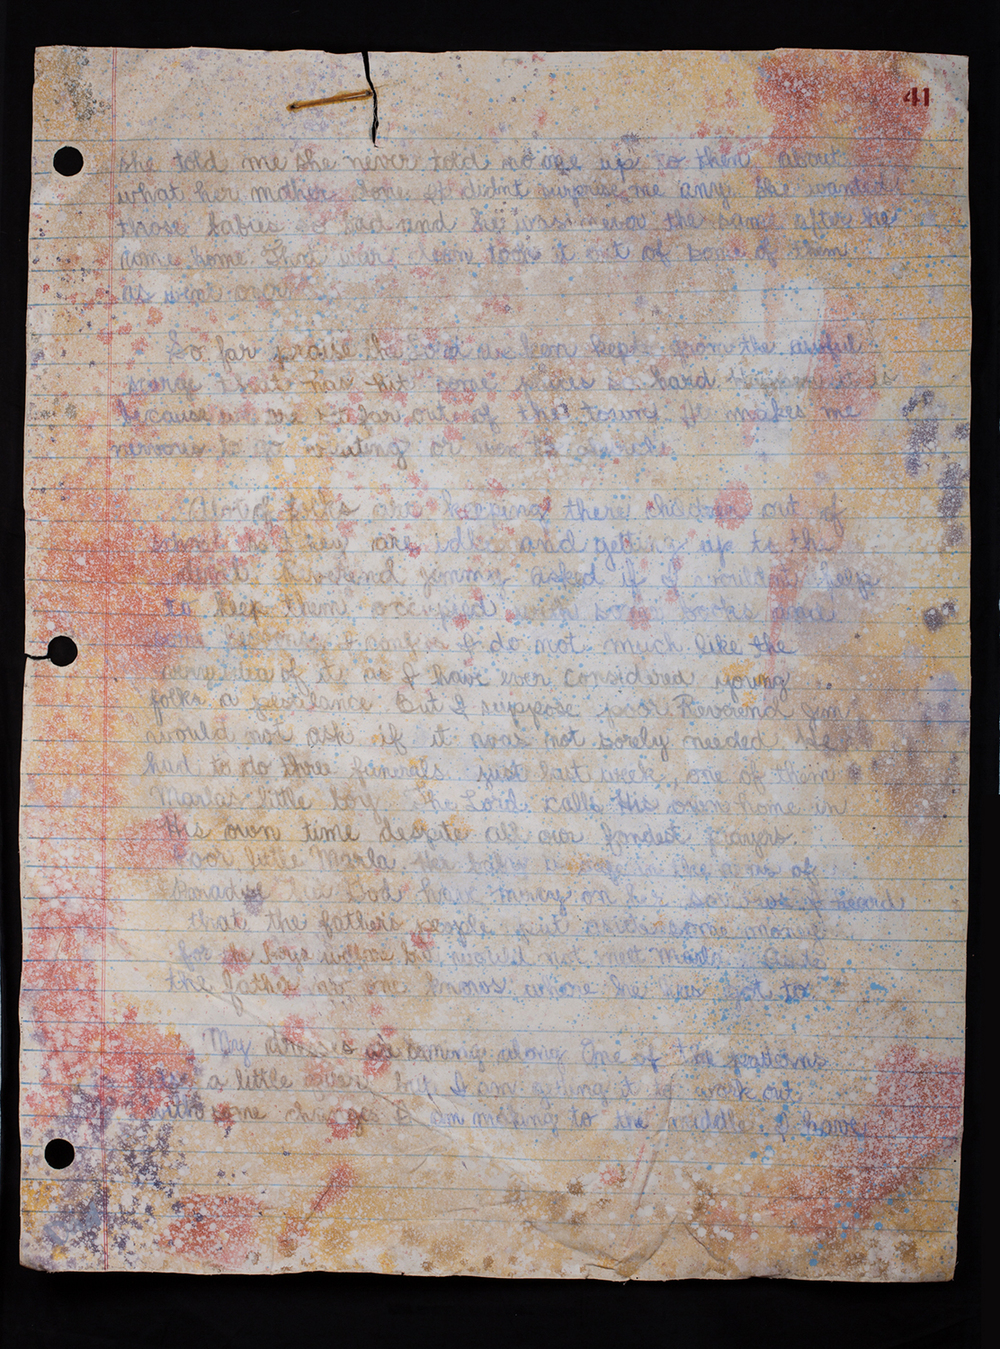 No. 5 triptych): Three Stapled pages from Myrna's Diary - Pgs. 41,42,43. - pg. 41